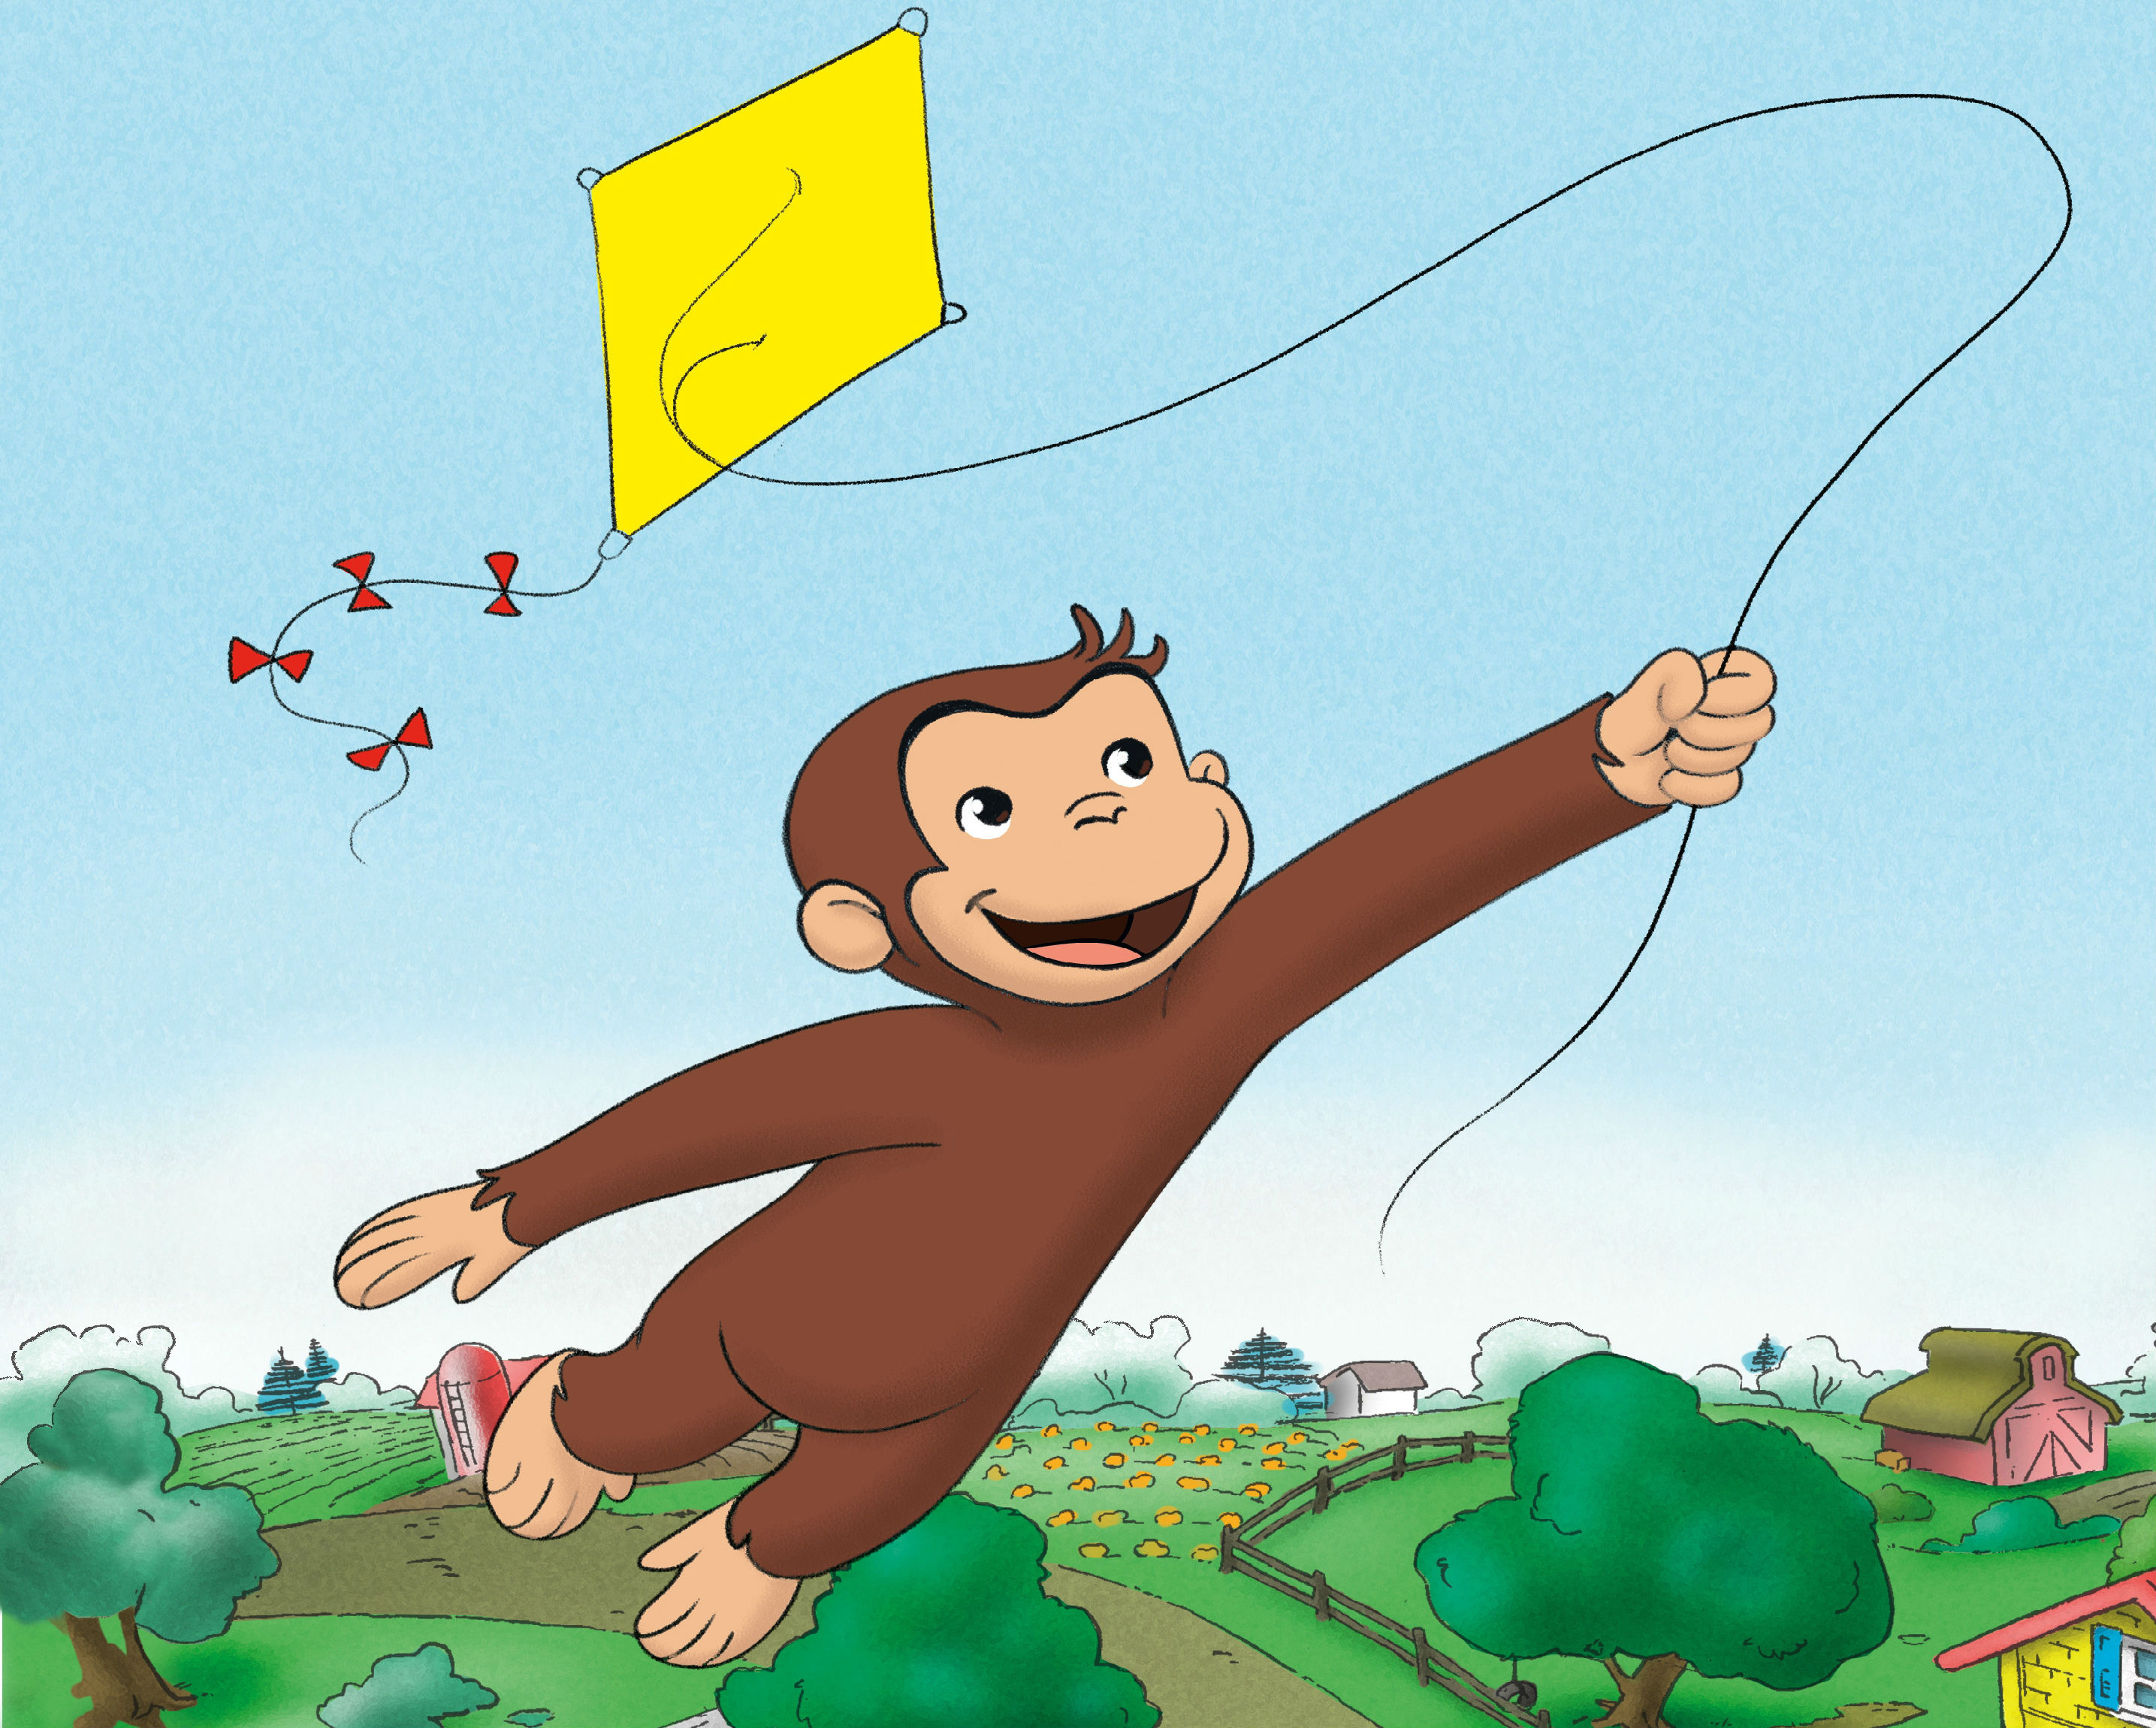 curious george fw wallpaper 2870x2300 185530 wallpaperup